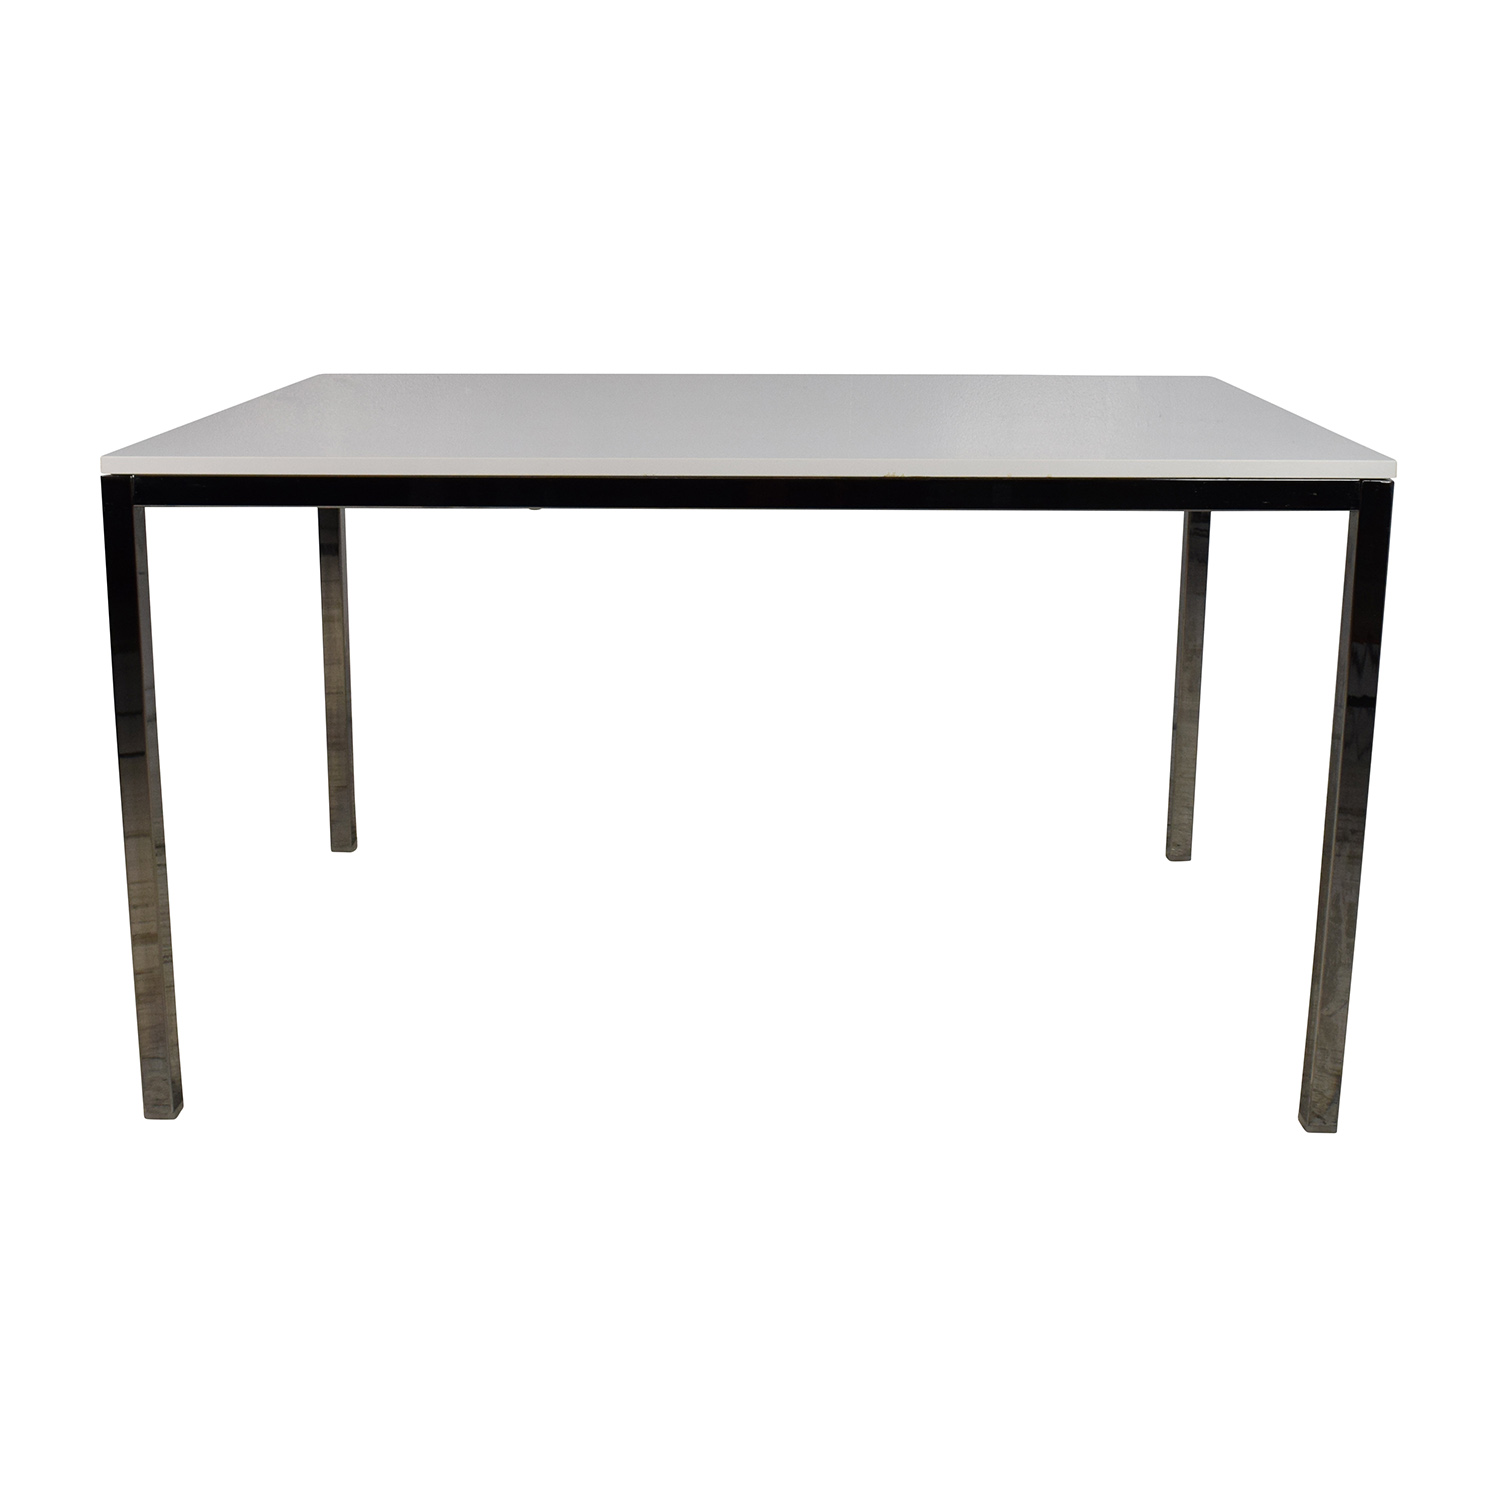 IKEA IKEA White Top Dining Table with Silver Chrome Legs Dinner Tables